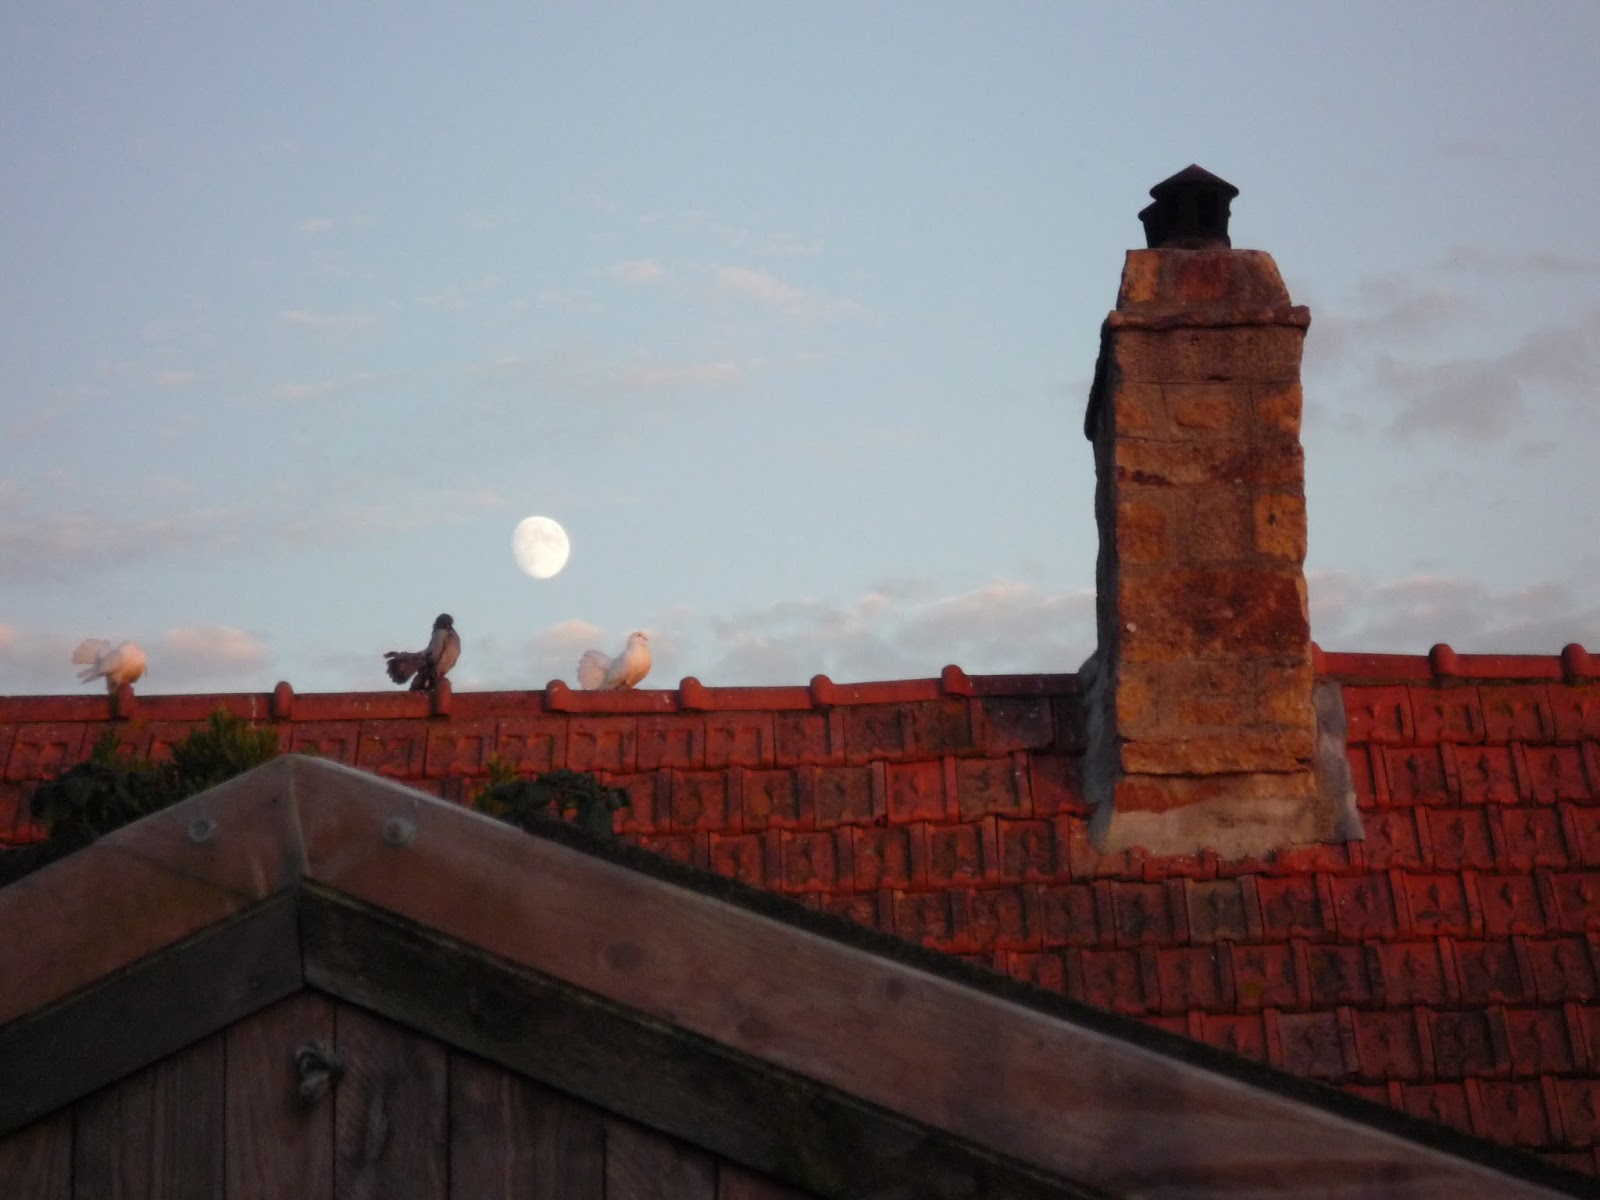 Fantails on a roof